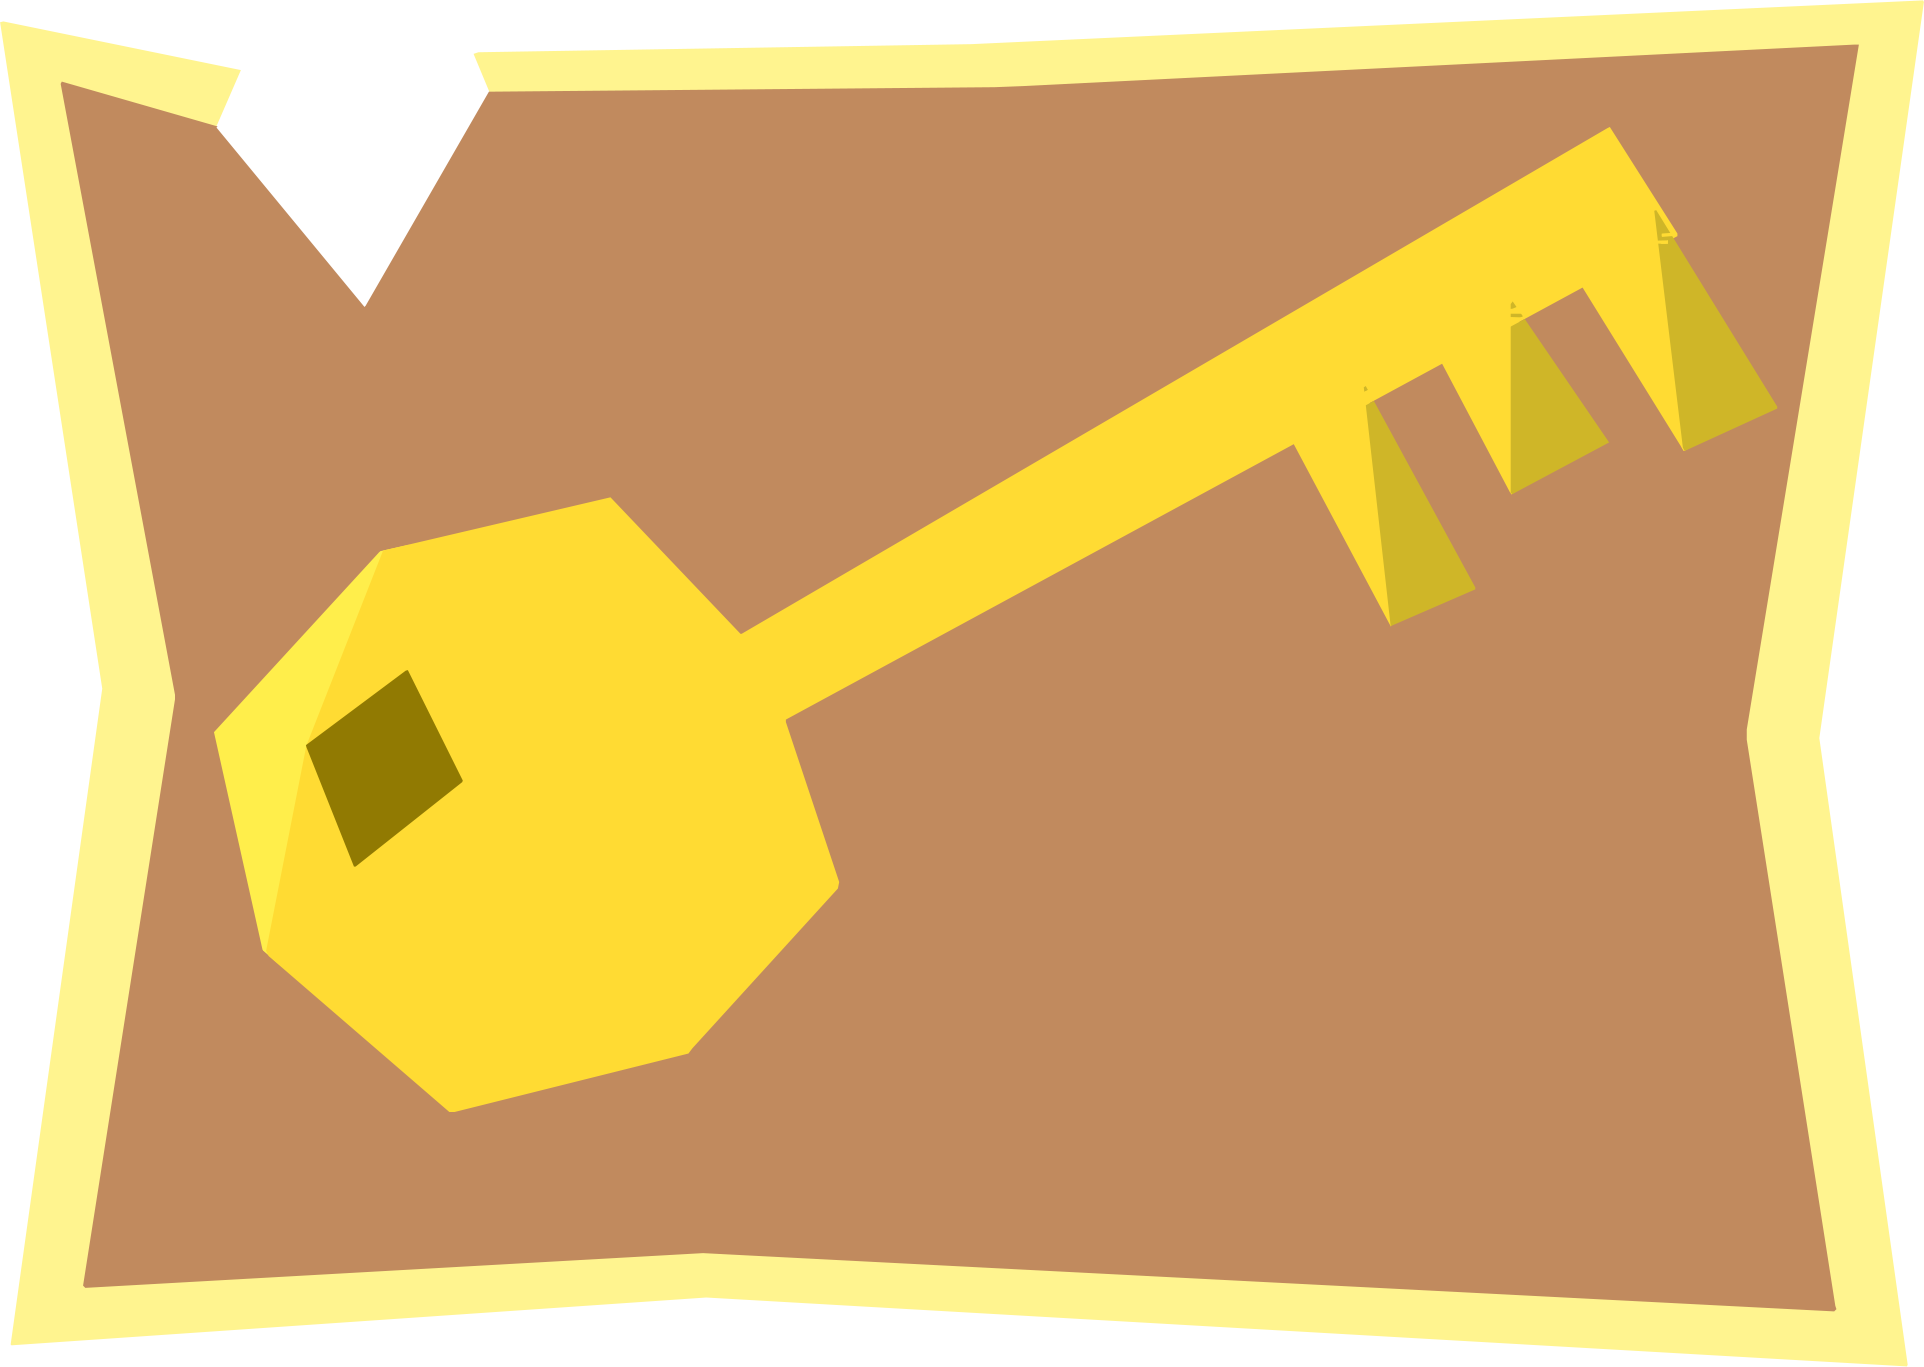 Treasure clipart treasure key. Token runescape wiki fandom